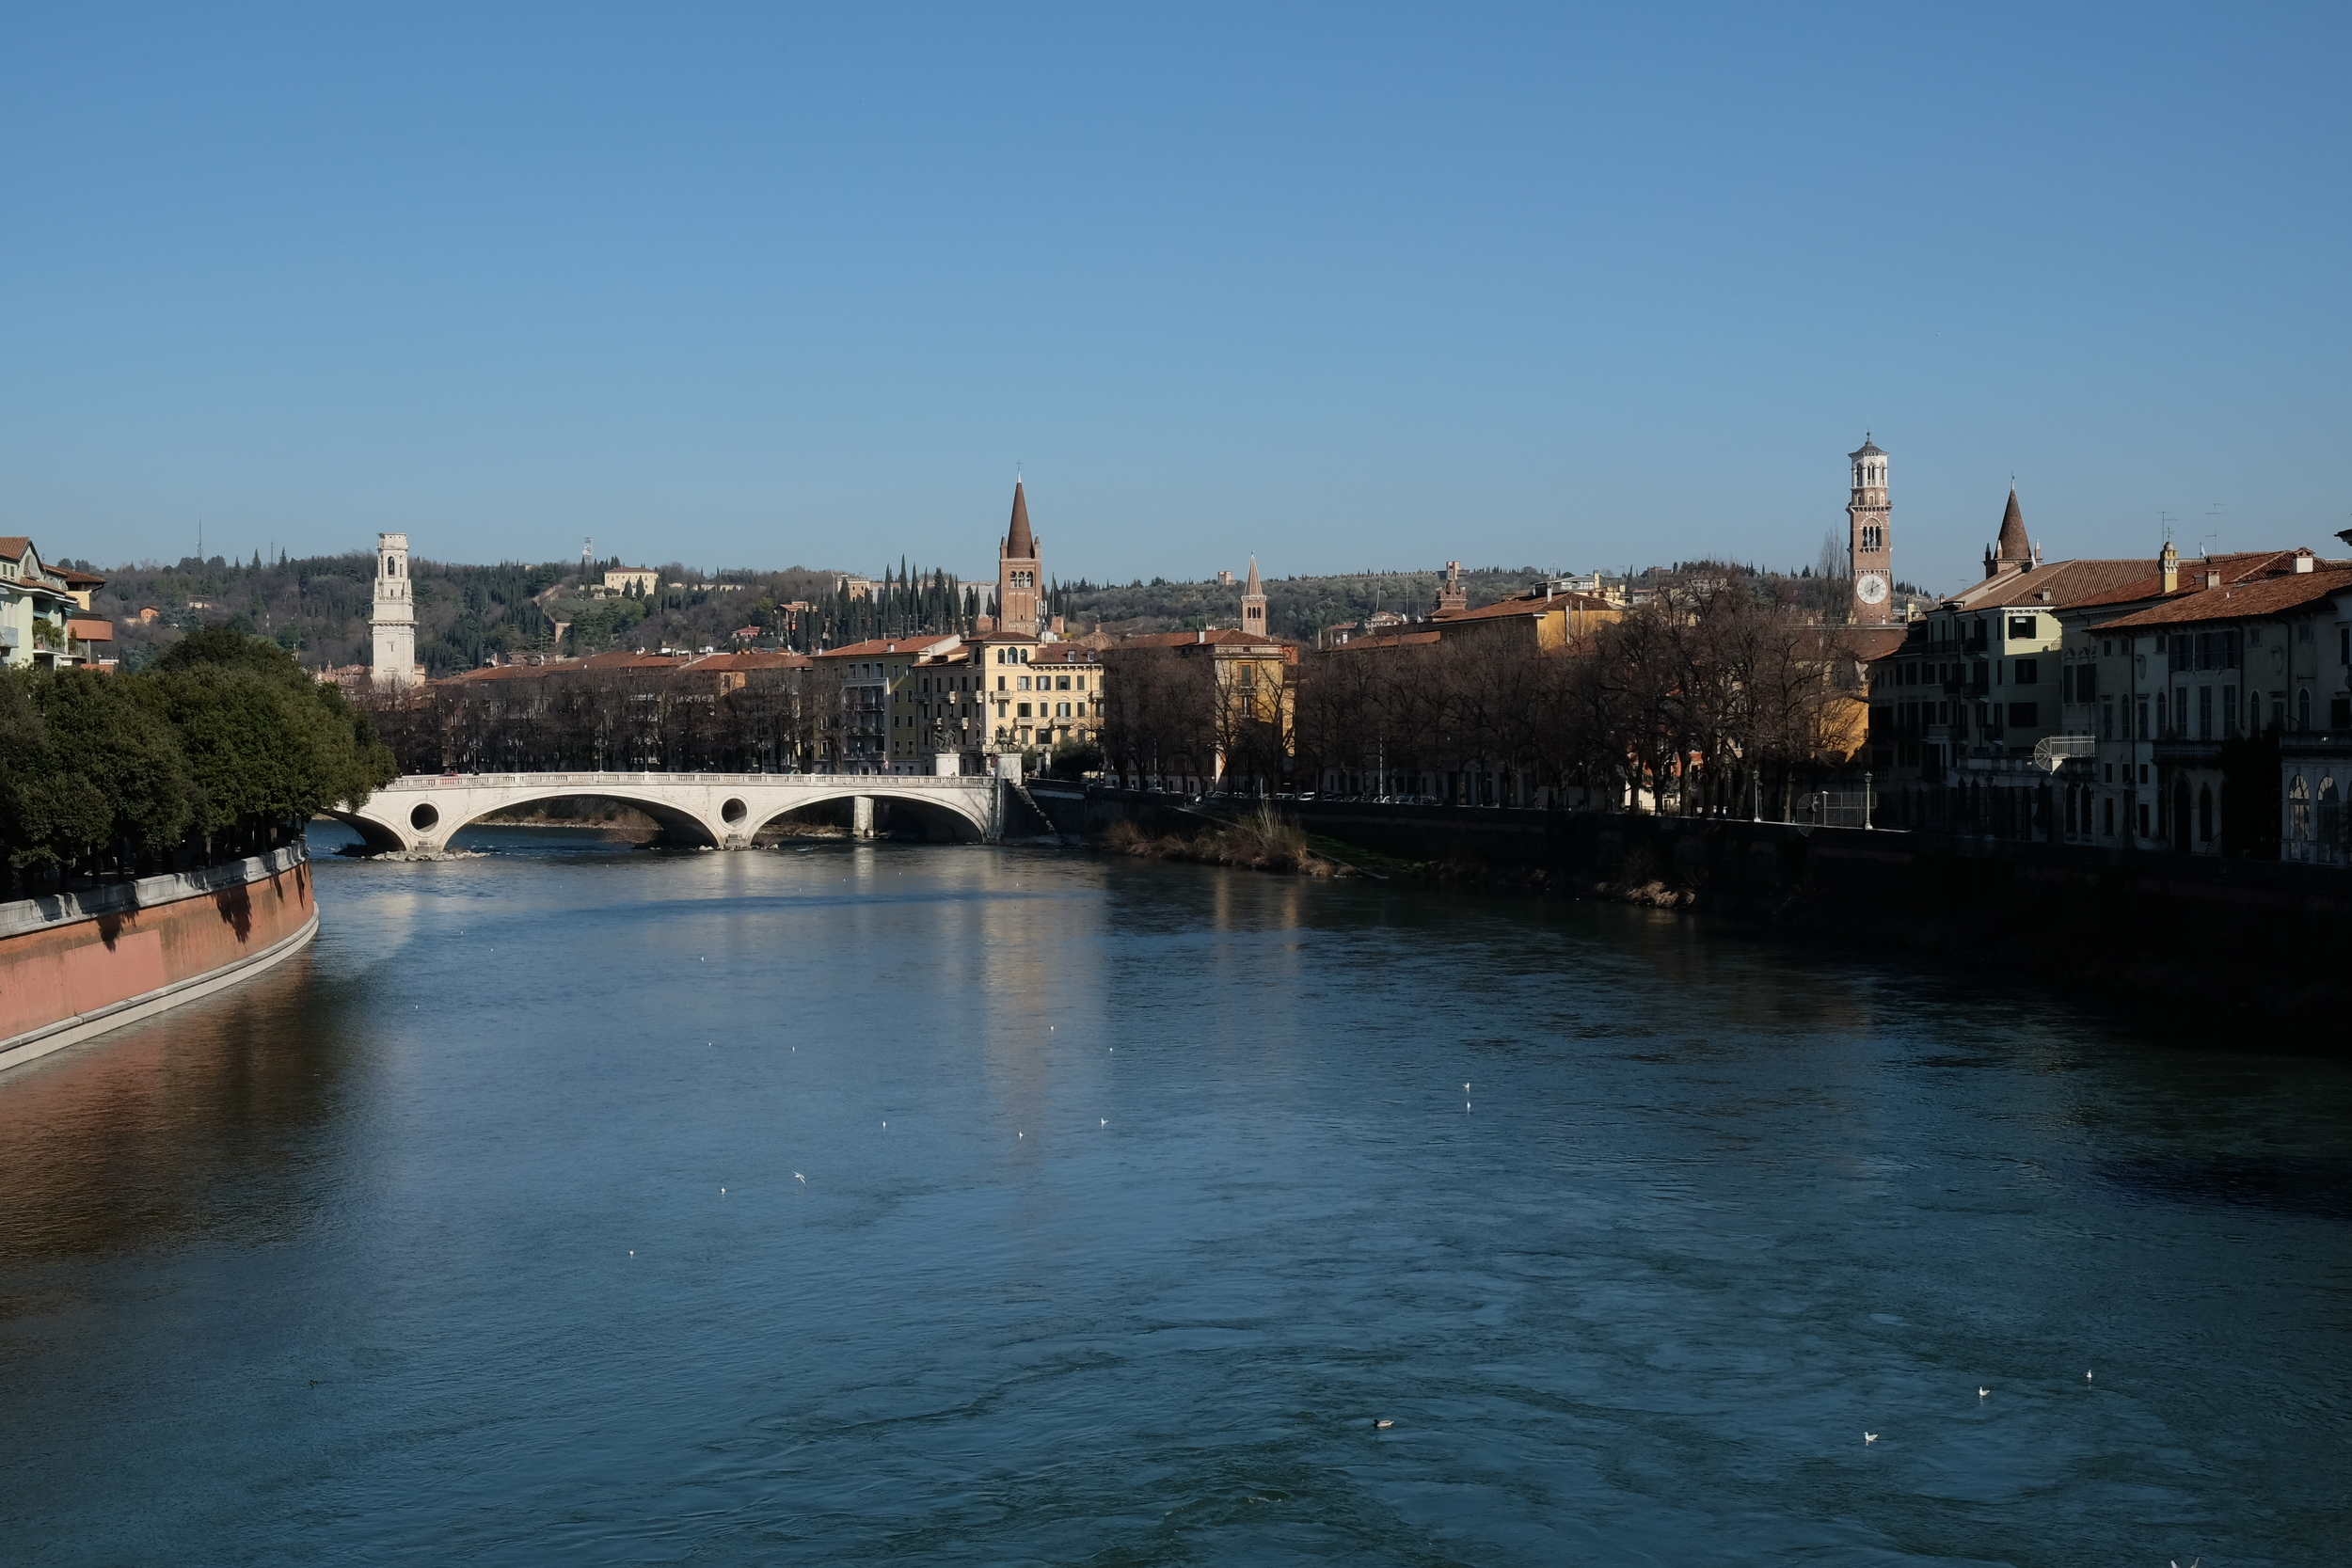 Adige River runs a perimeter around the center of Verona. Also, SO many church towers. Six just in this photo!